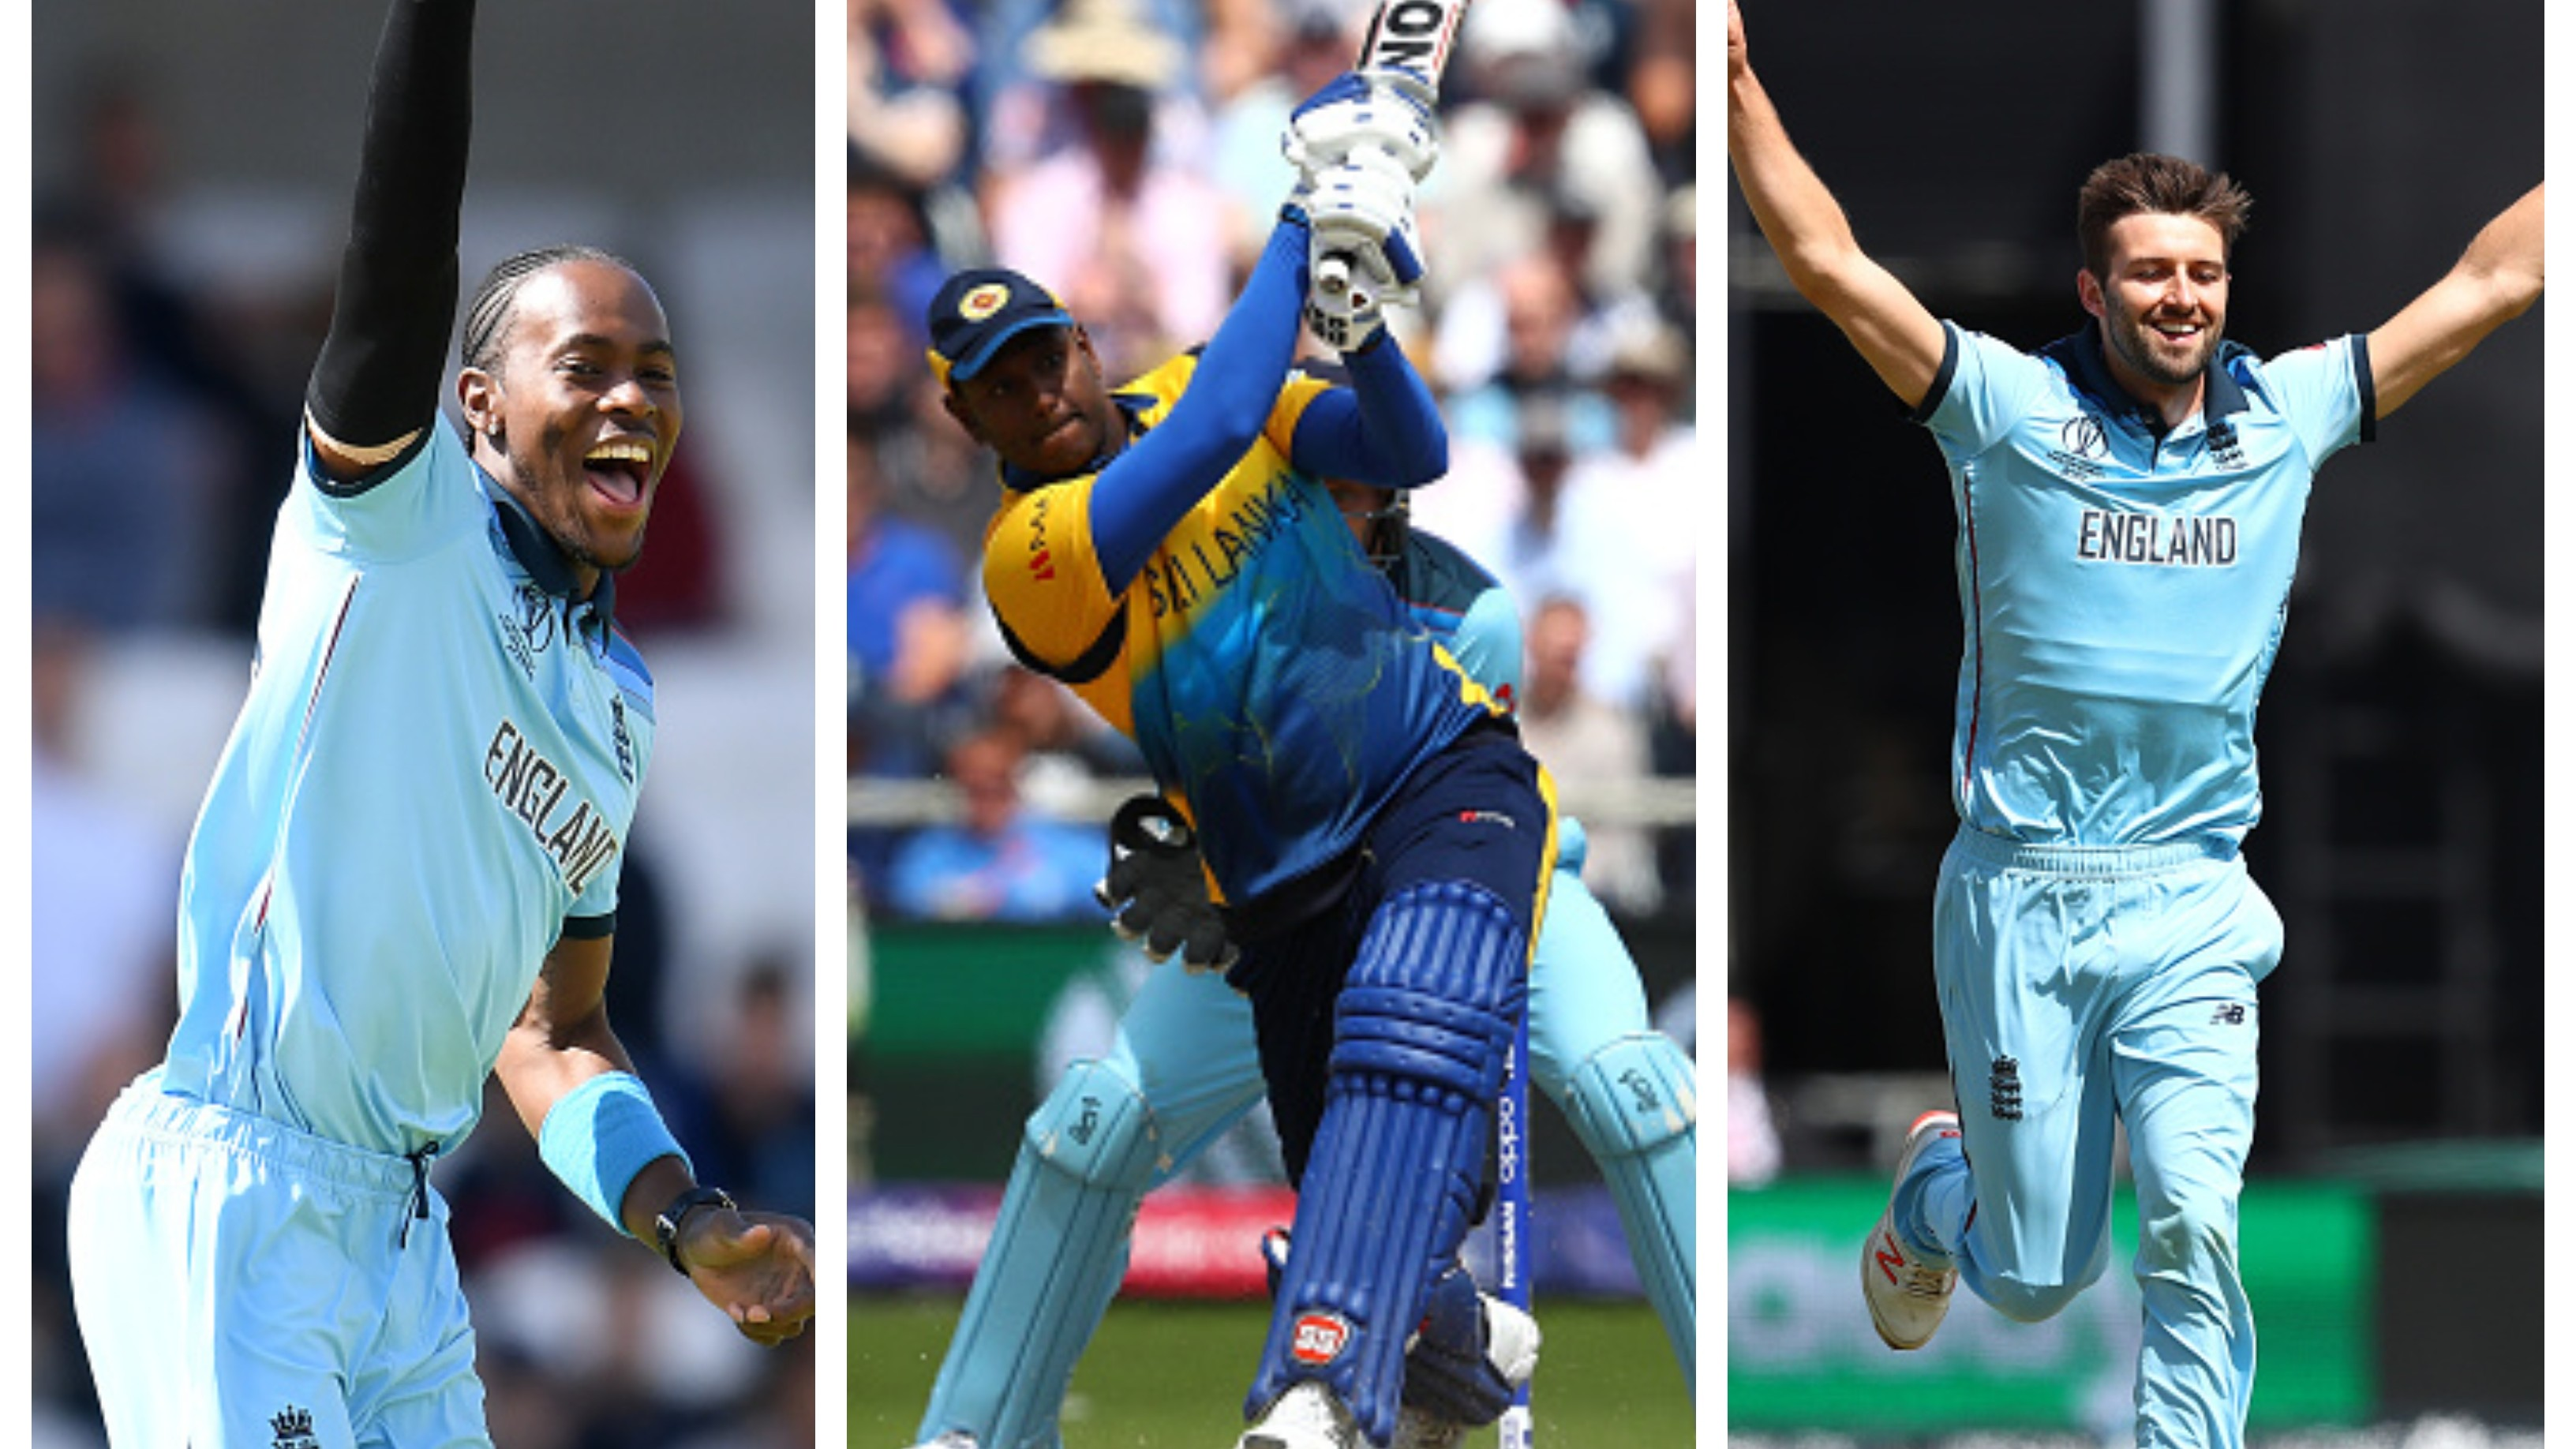 CWC 2019: ENG v SL - Archer, Wood help England restrict Sri Lanka to 232/9, Mathews scores 85*